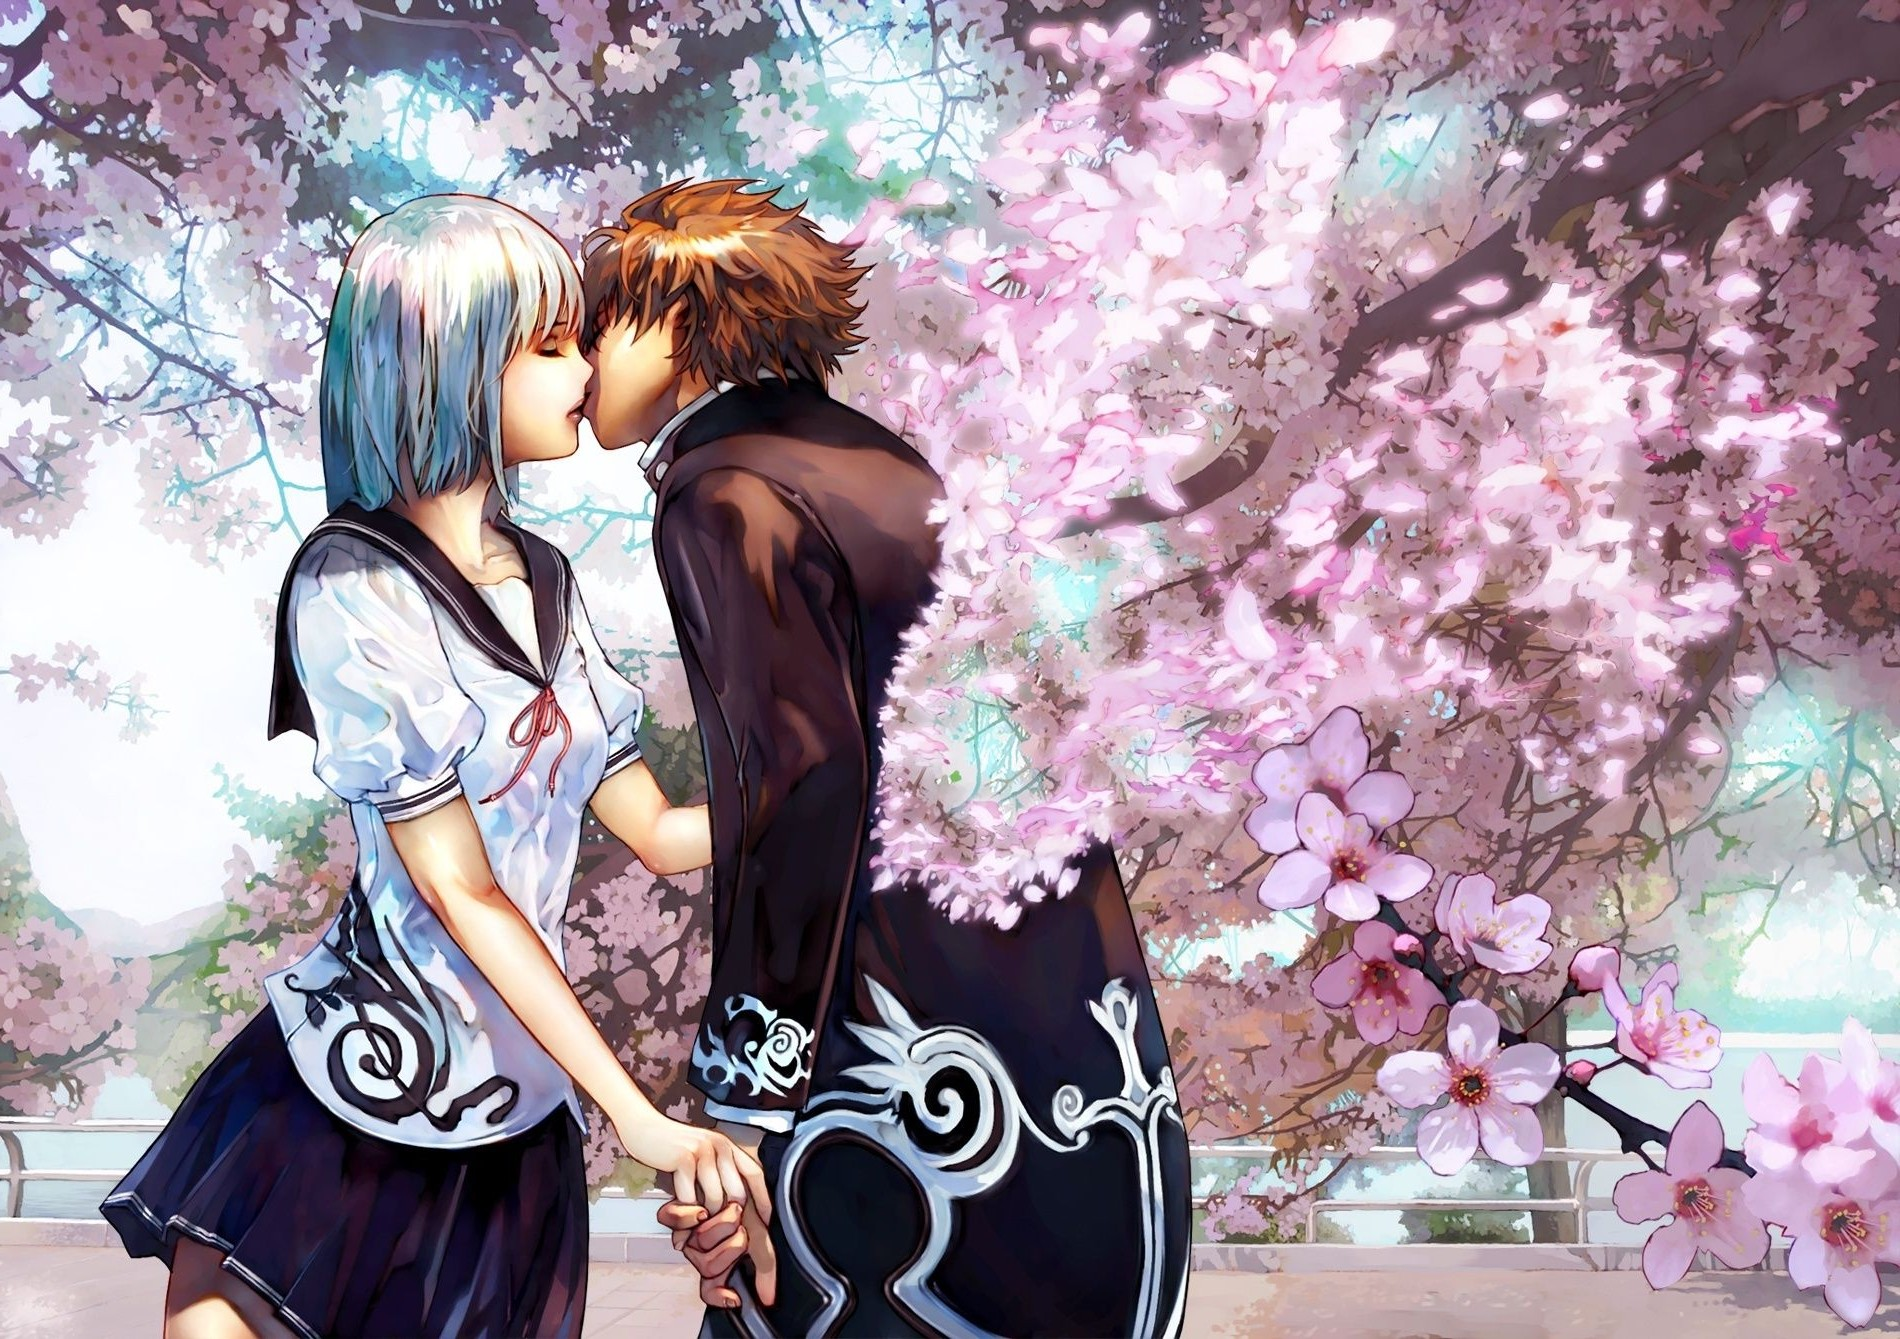 Anime Couple Cute Wallpapers  Android Apps on Google Play